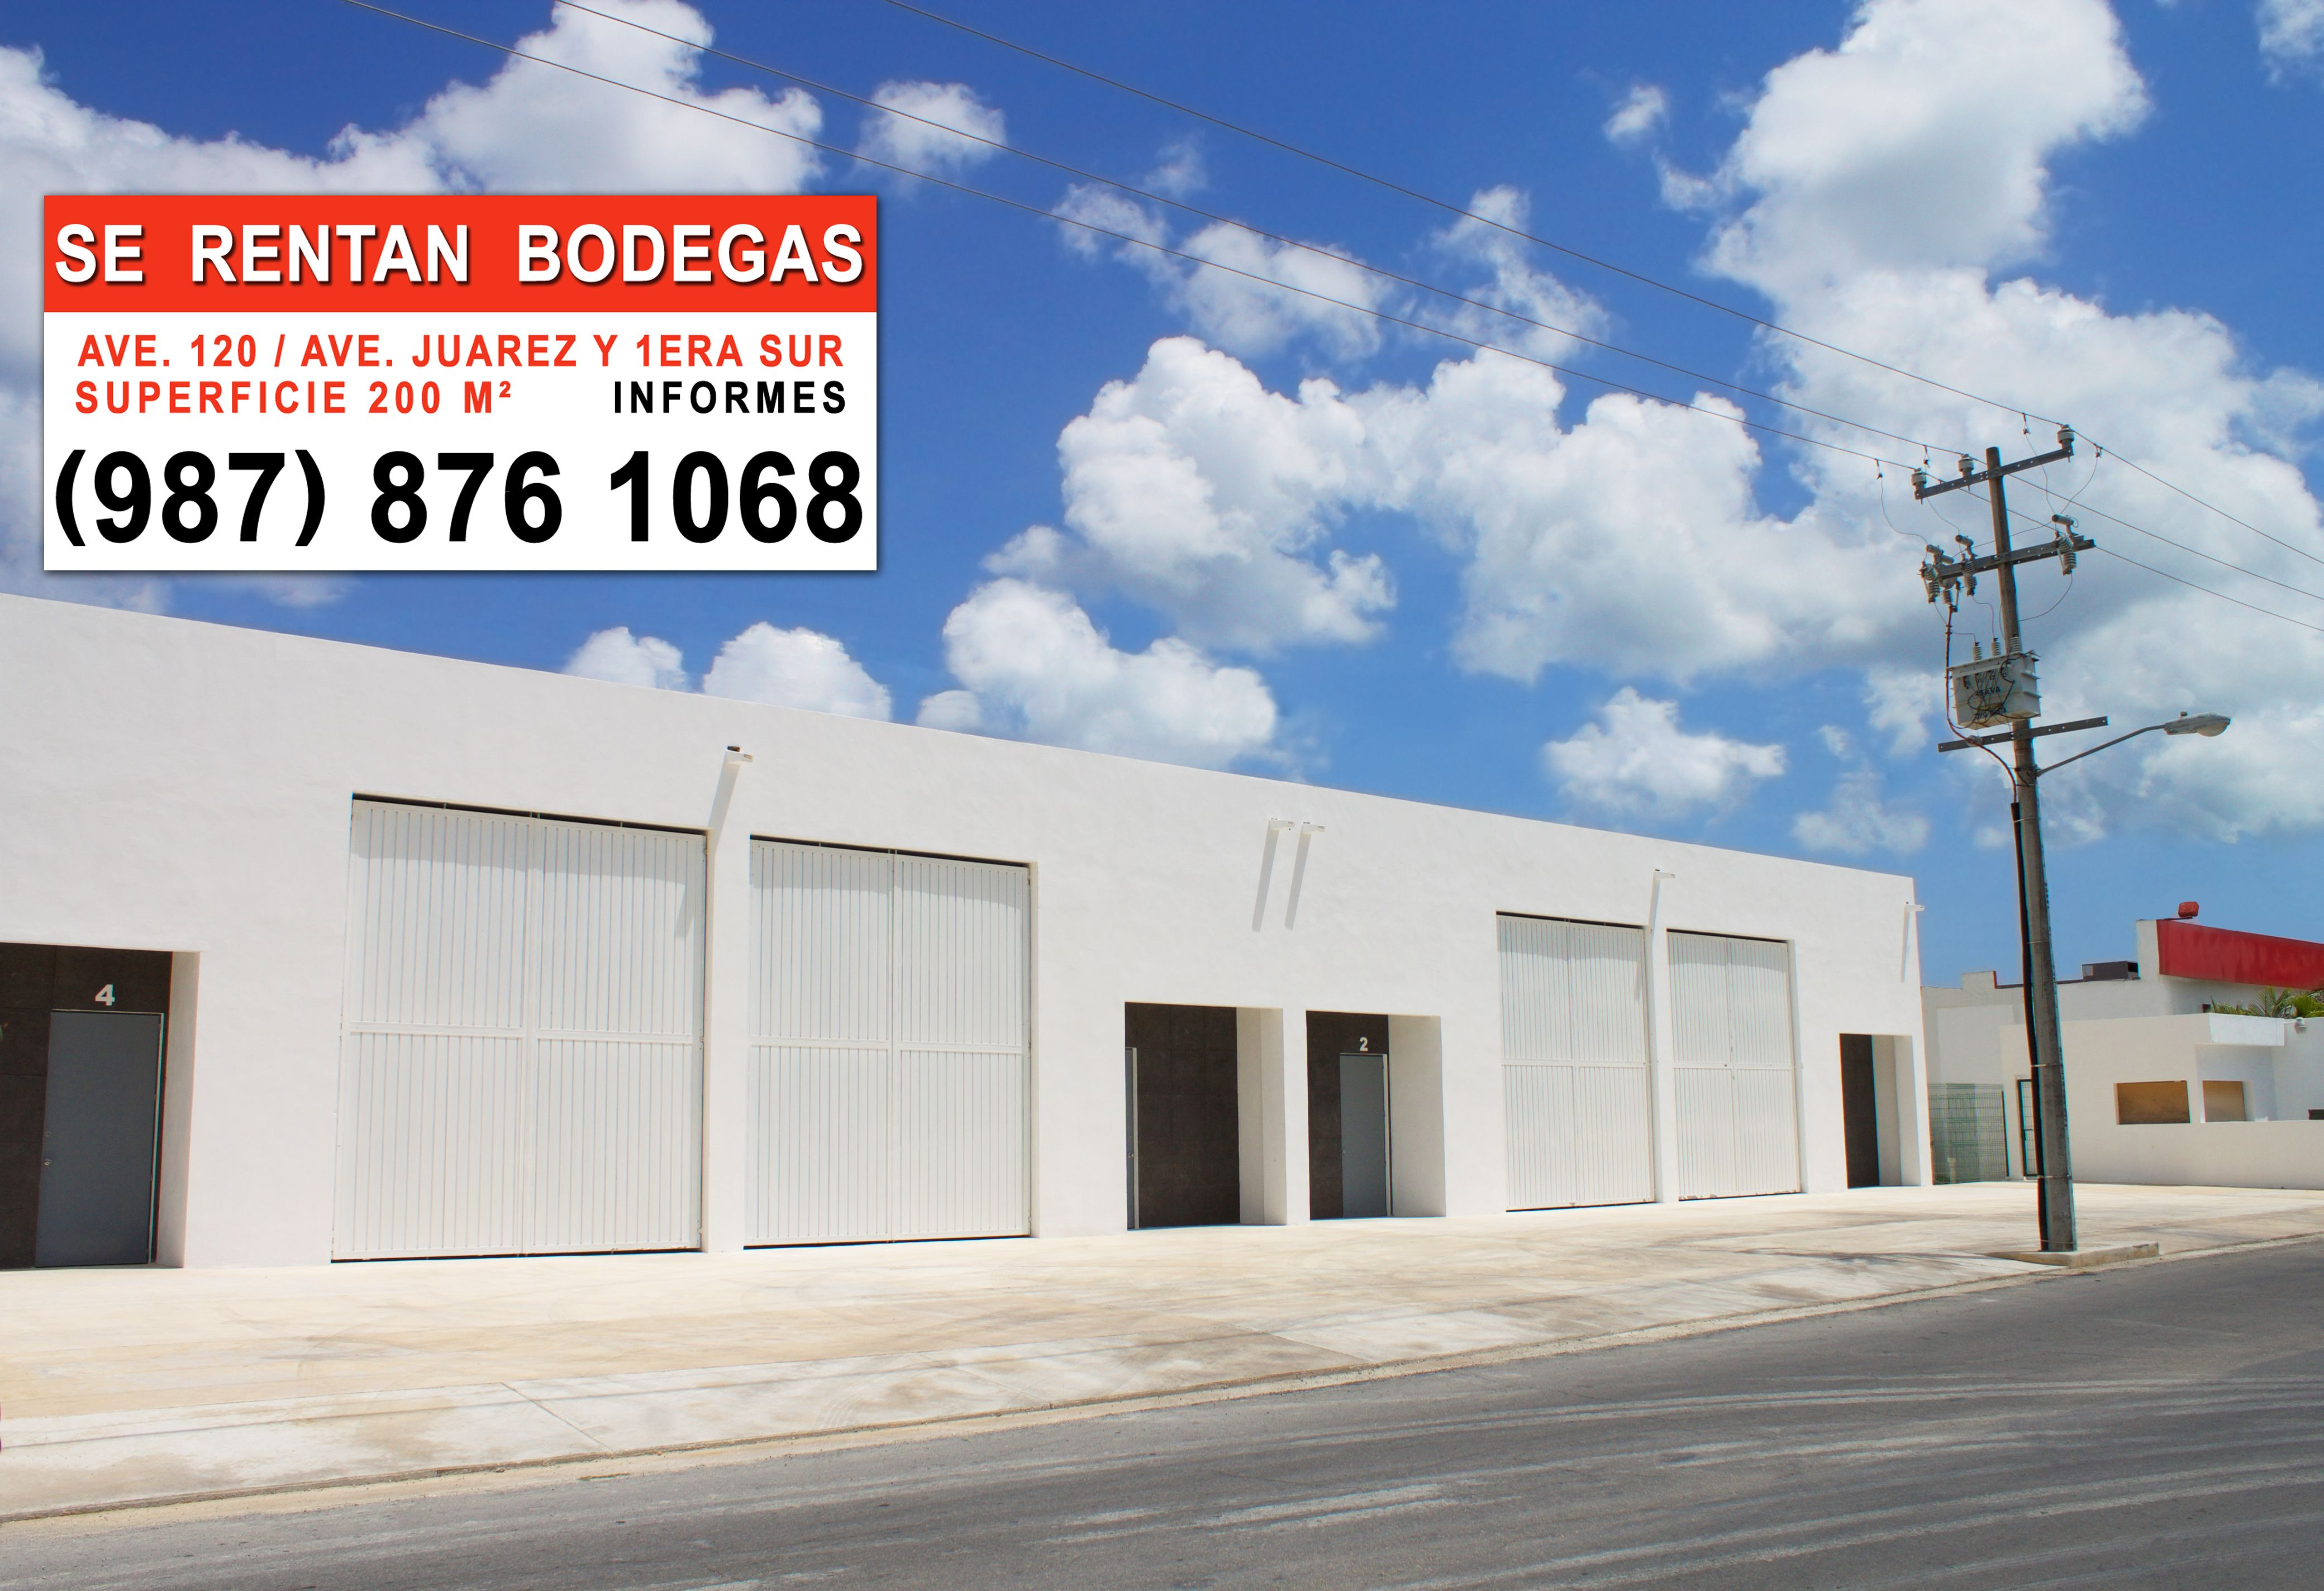 Bodegas en renta cozumel | self storage for rent cozumel | locales comerciales en renta cozumel | commercial place for rent cozumel | centro comercial cozumel | bodegas industriales | bodegas concreto | Maderería y Materiales para Construcción Dimaco Cozumel